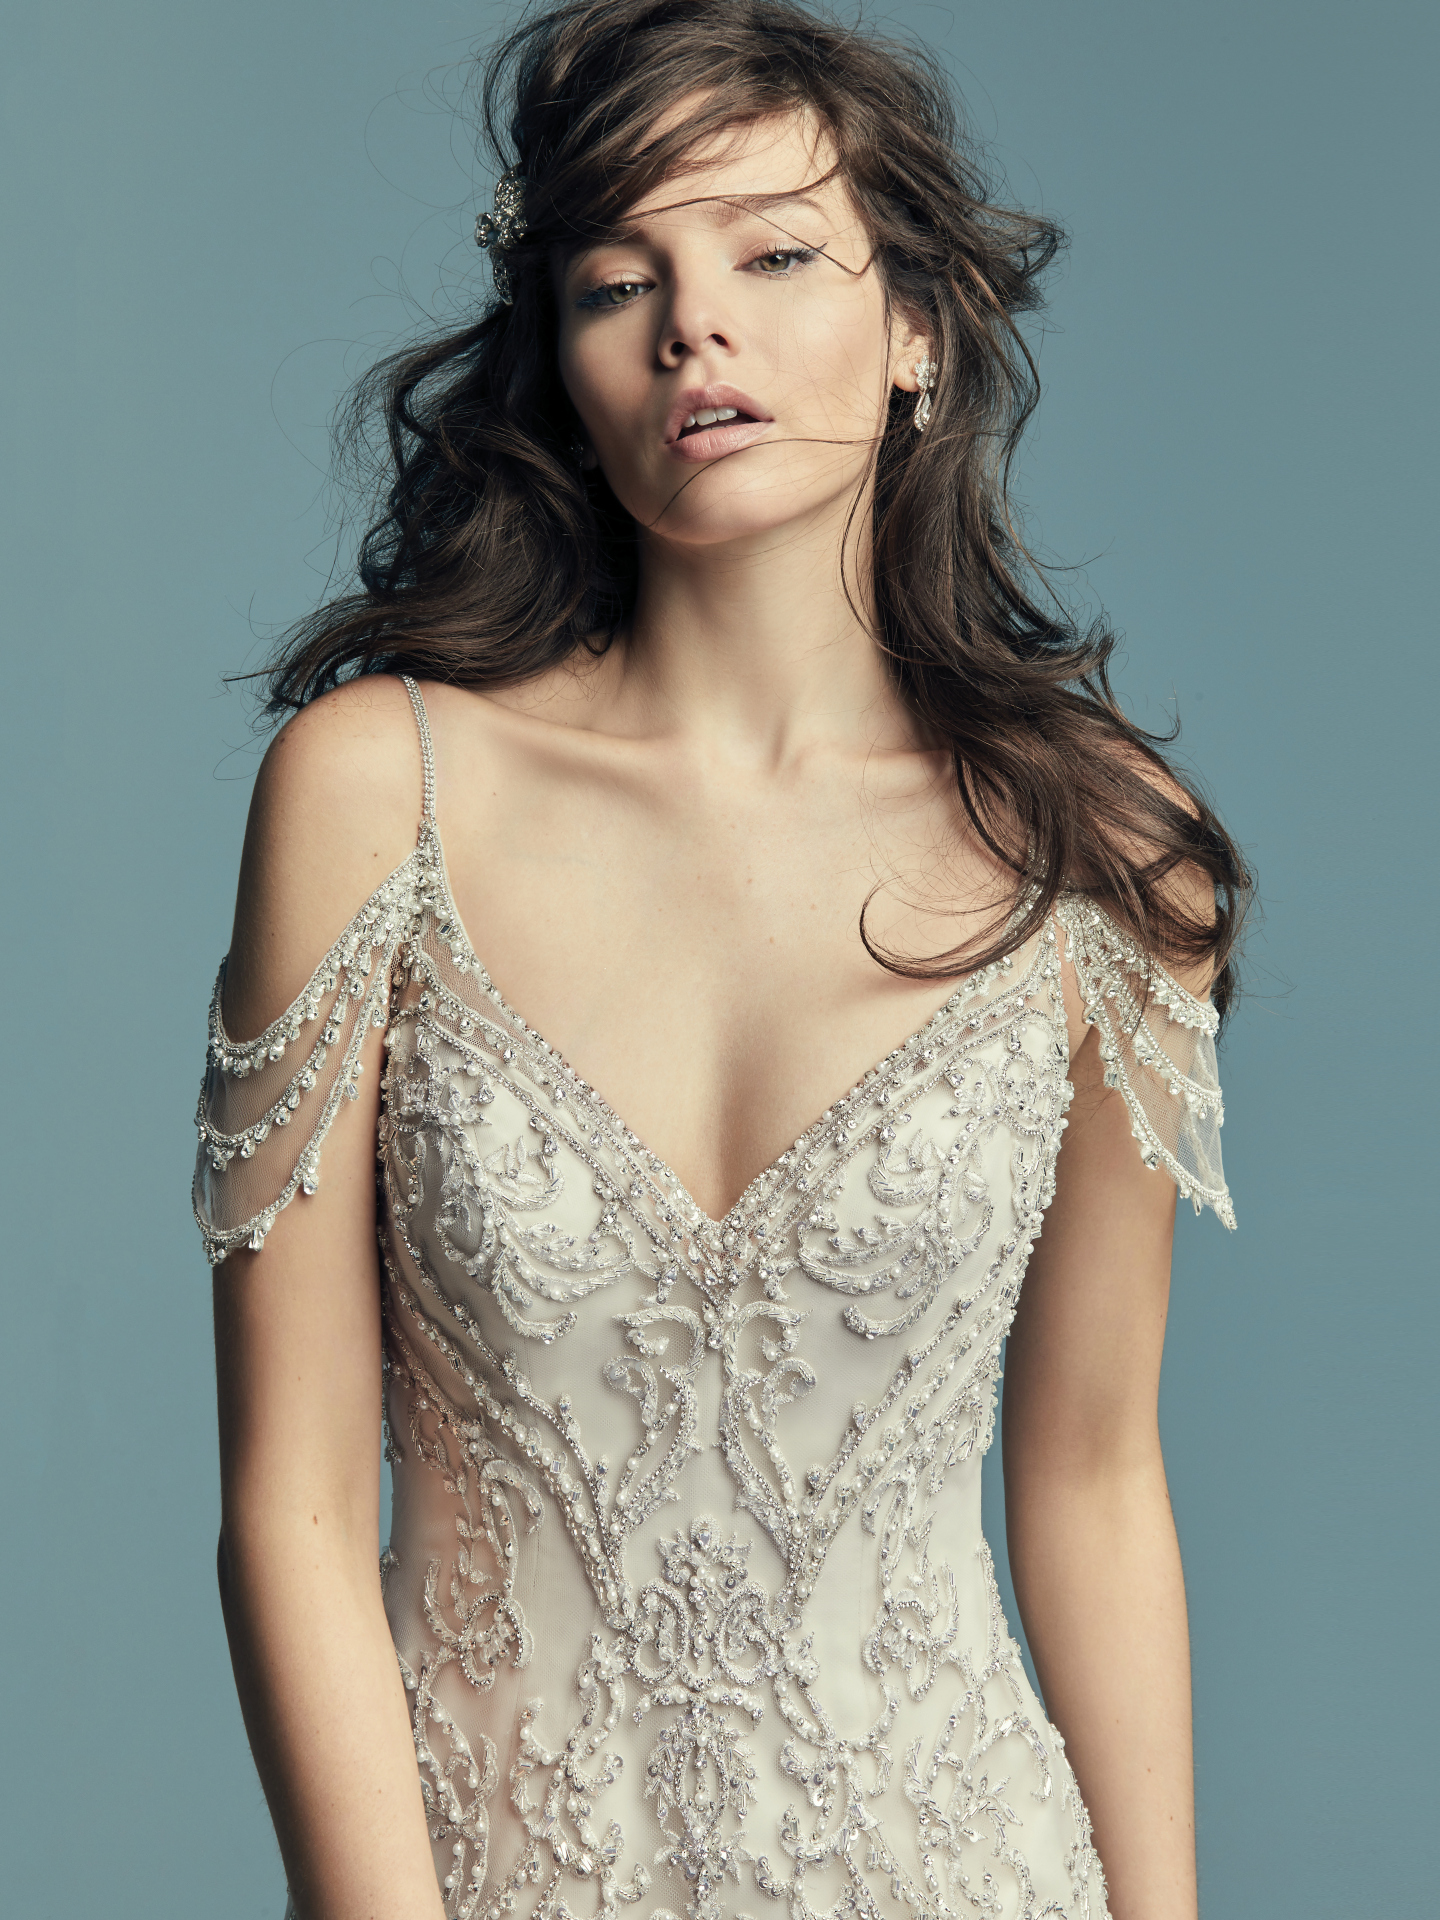 Cold shoulder beaded sleeves for a unique shoulder treatement. Fabulous Wedding Dresses With a Variety of Beaded Sleeves